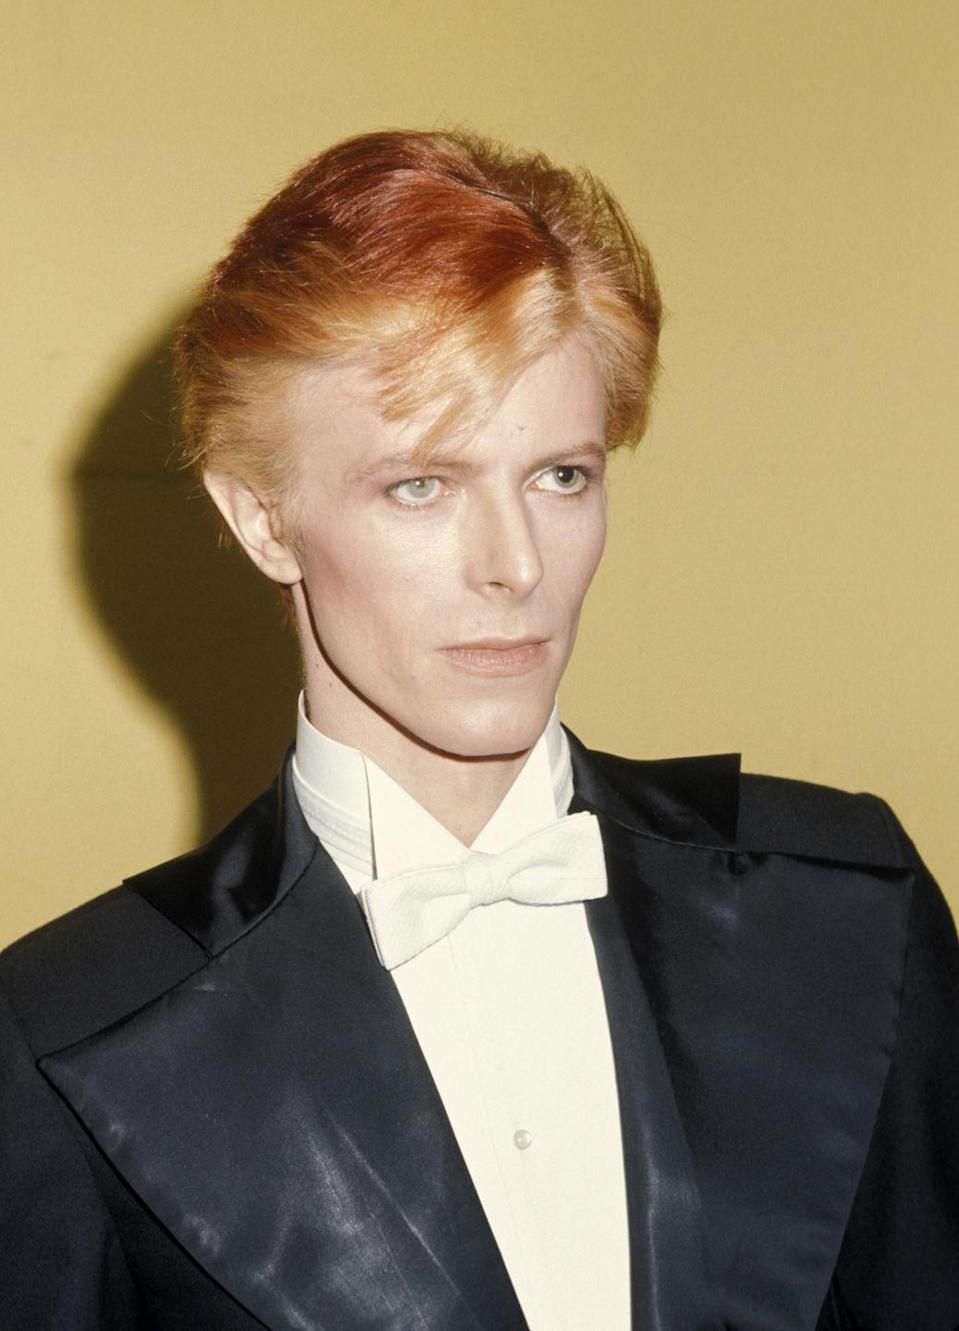 <p>Galella took this iconic photo of Bowie while he attended 1975's Grammy Awards.</p>